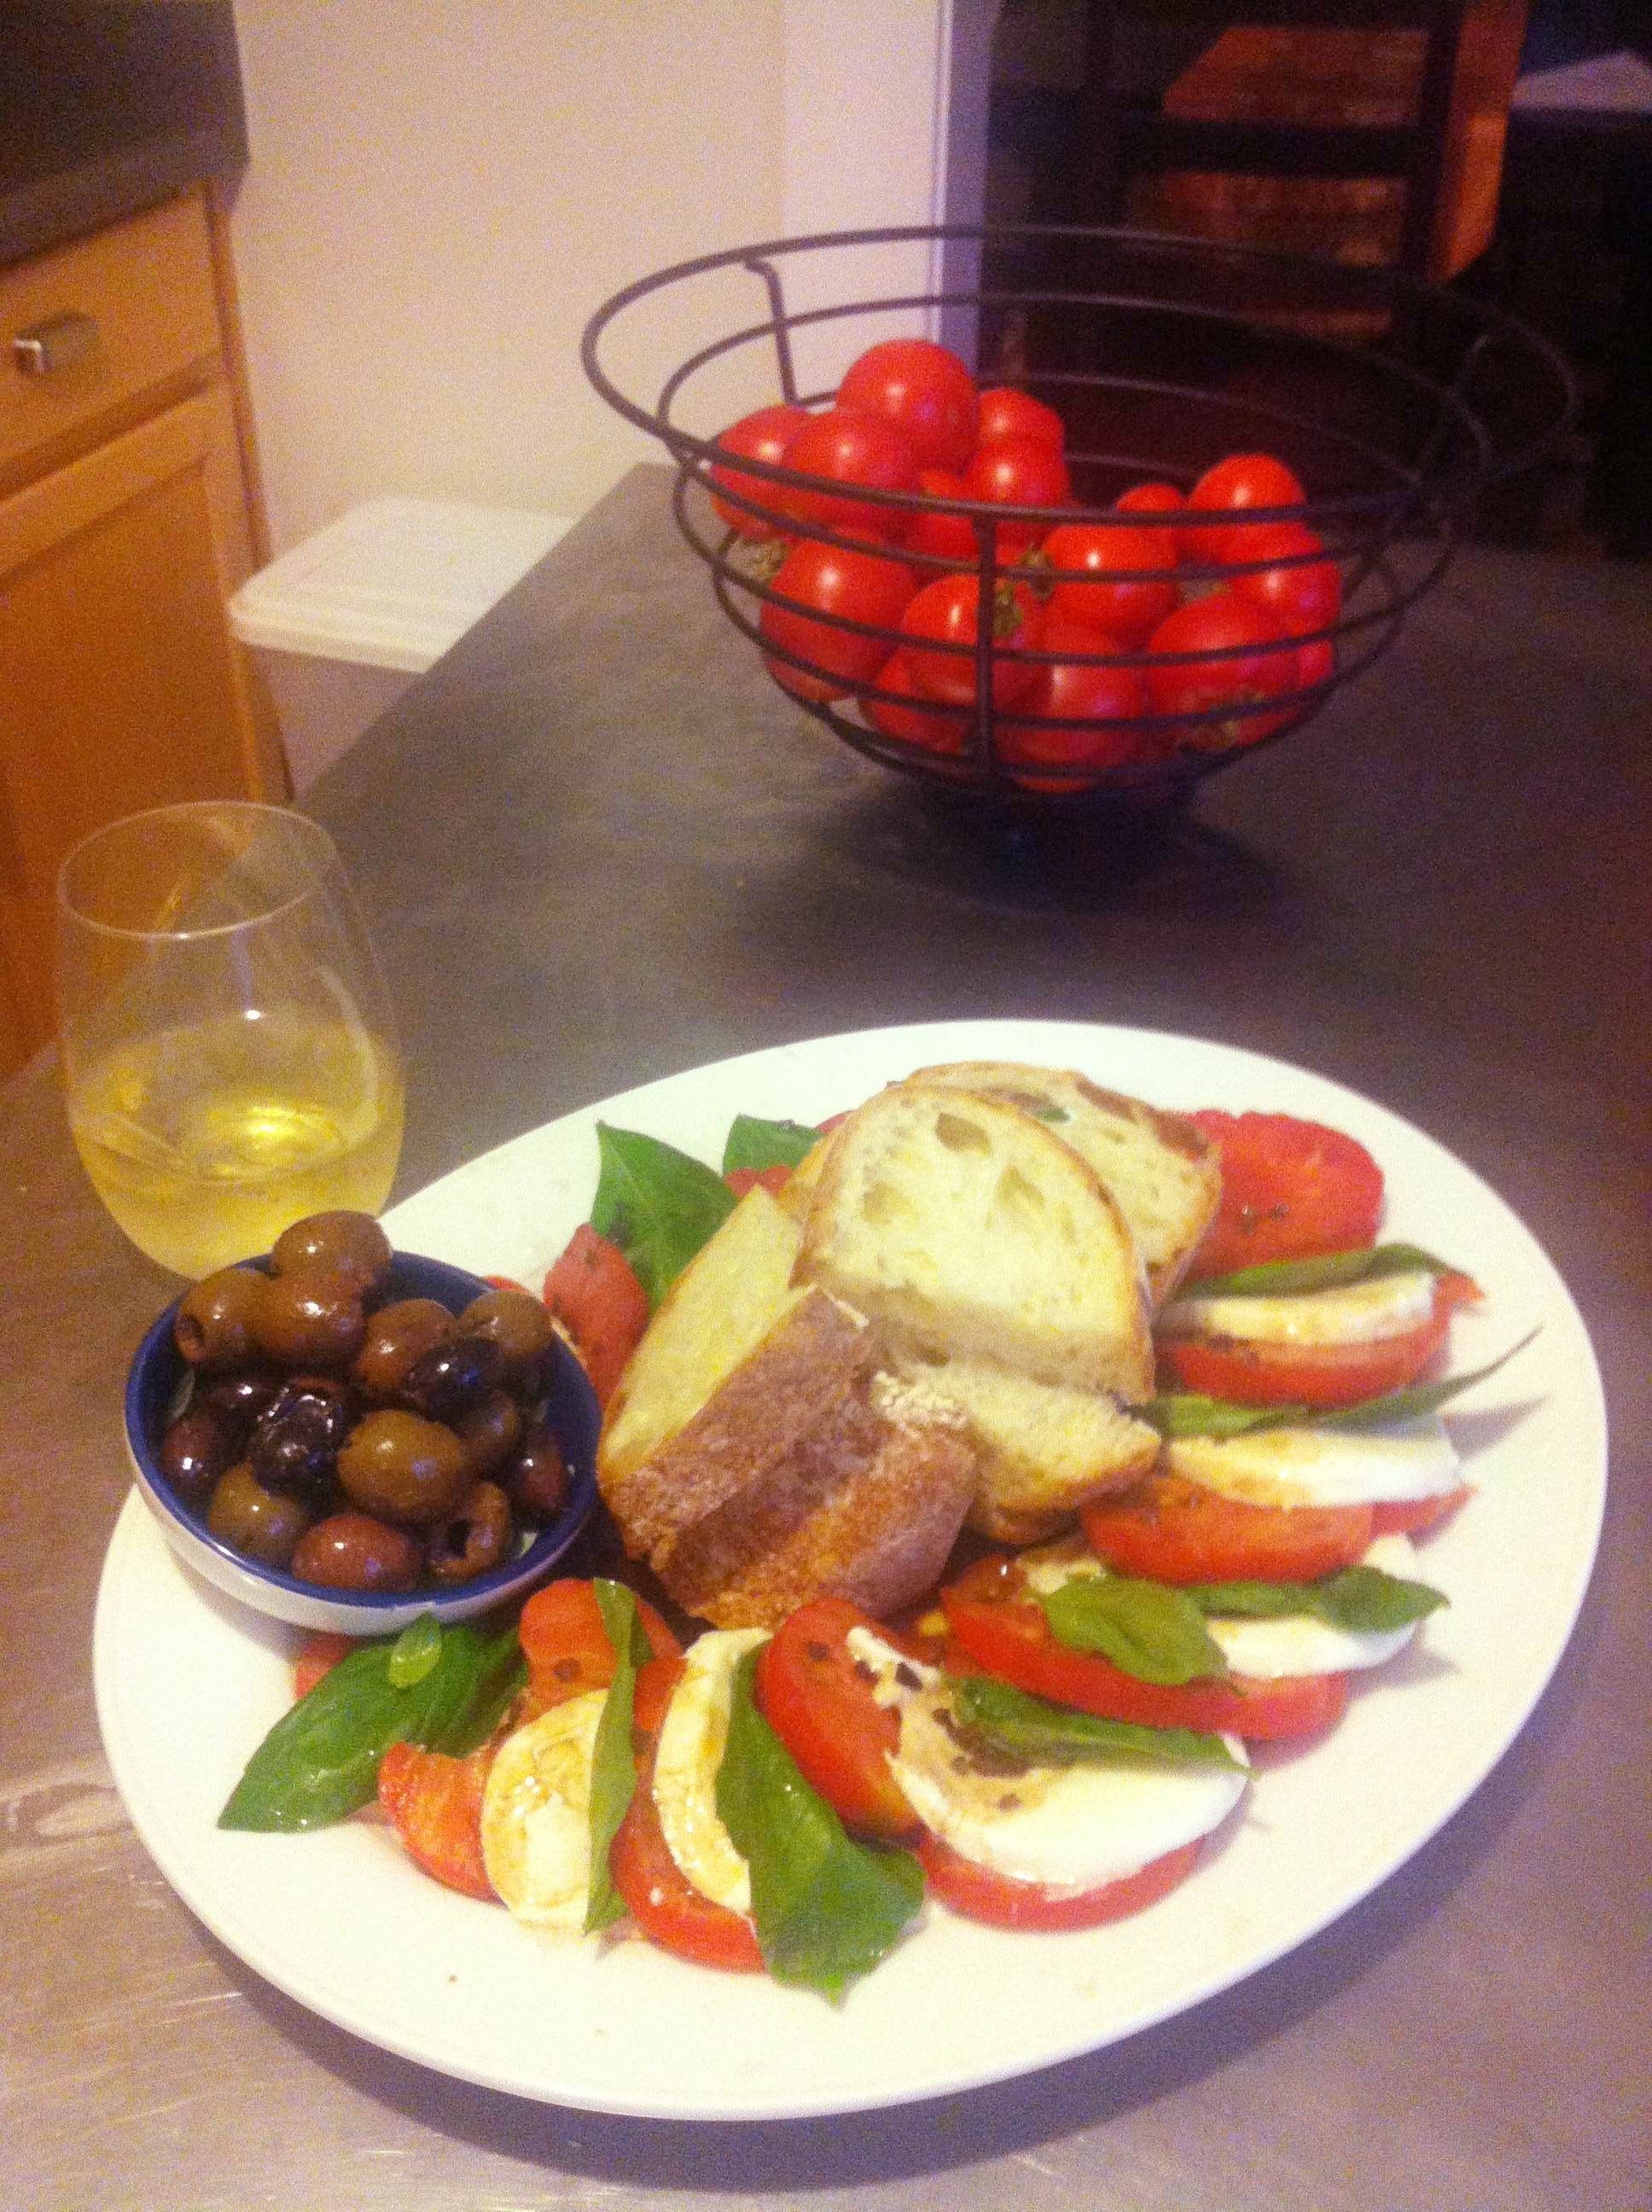 I could do this anytime, any day!  This is part of the wonderful Mediterranean diet!  YUM!